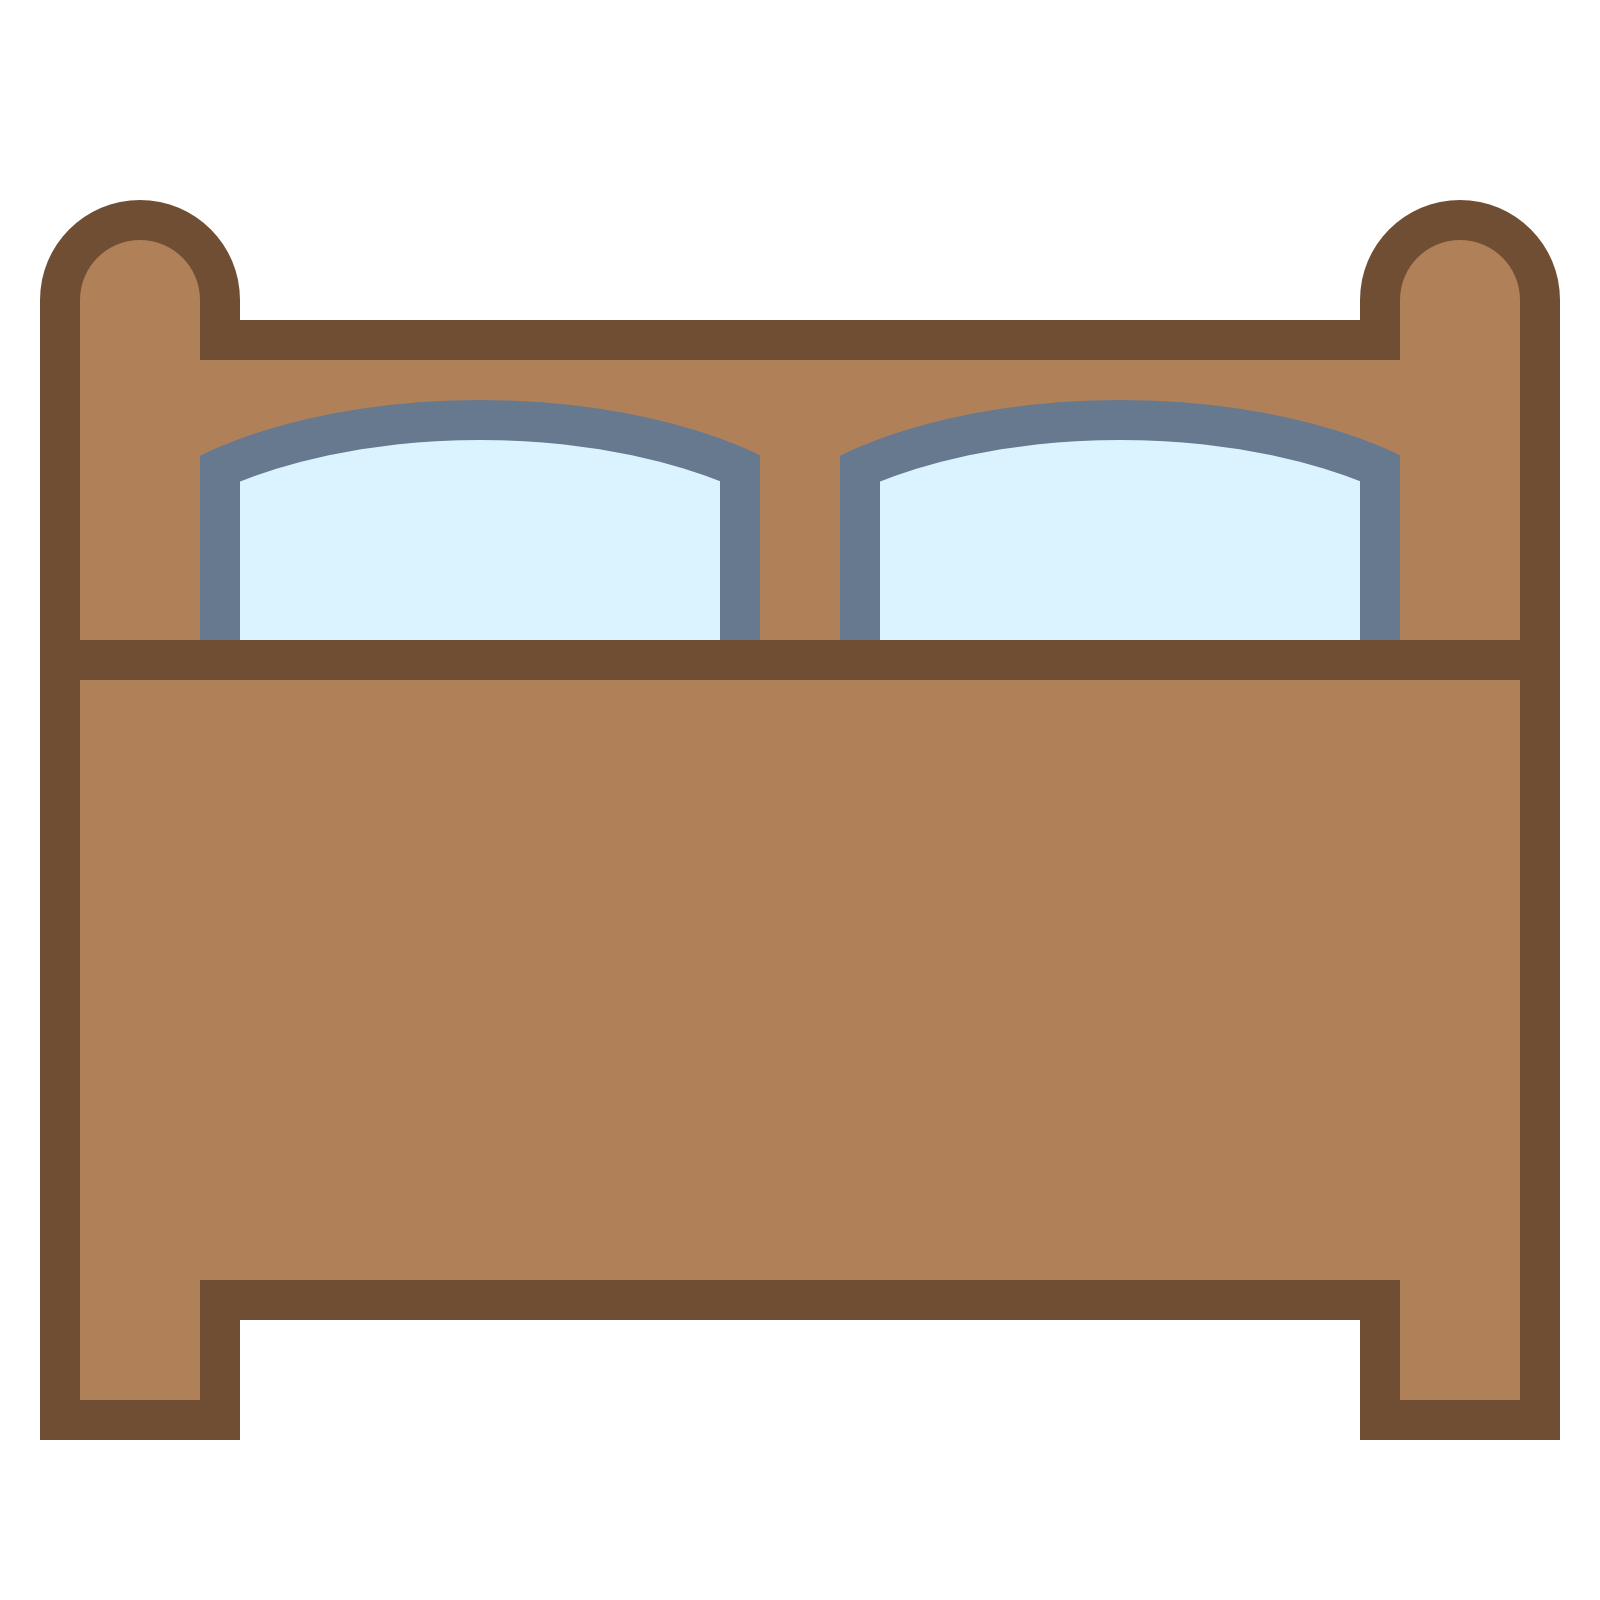 clip transparent download Bed clipart hotel bed. Bedroom home house real.